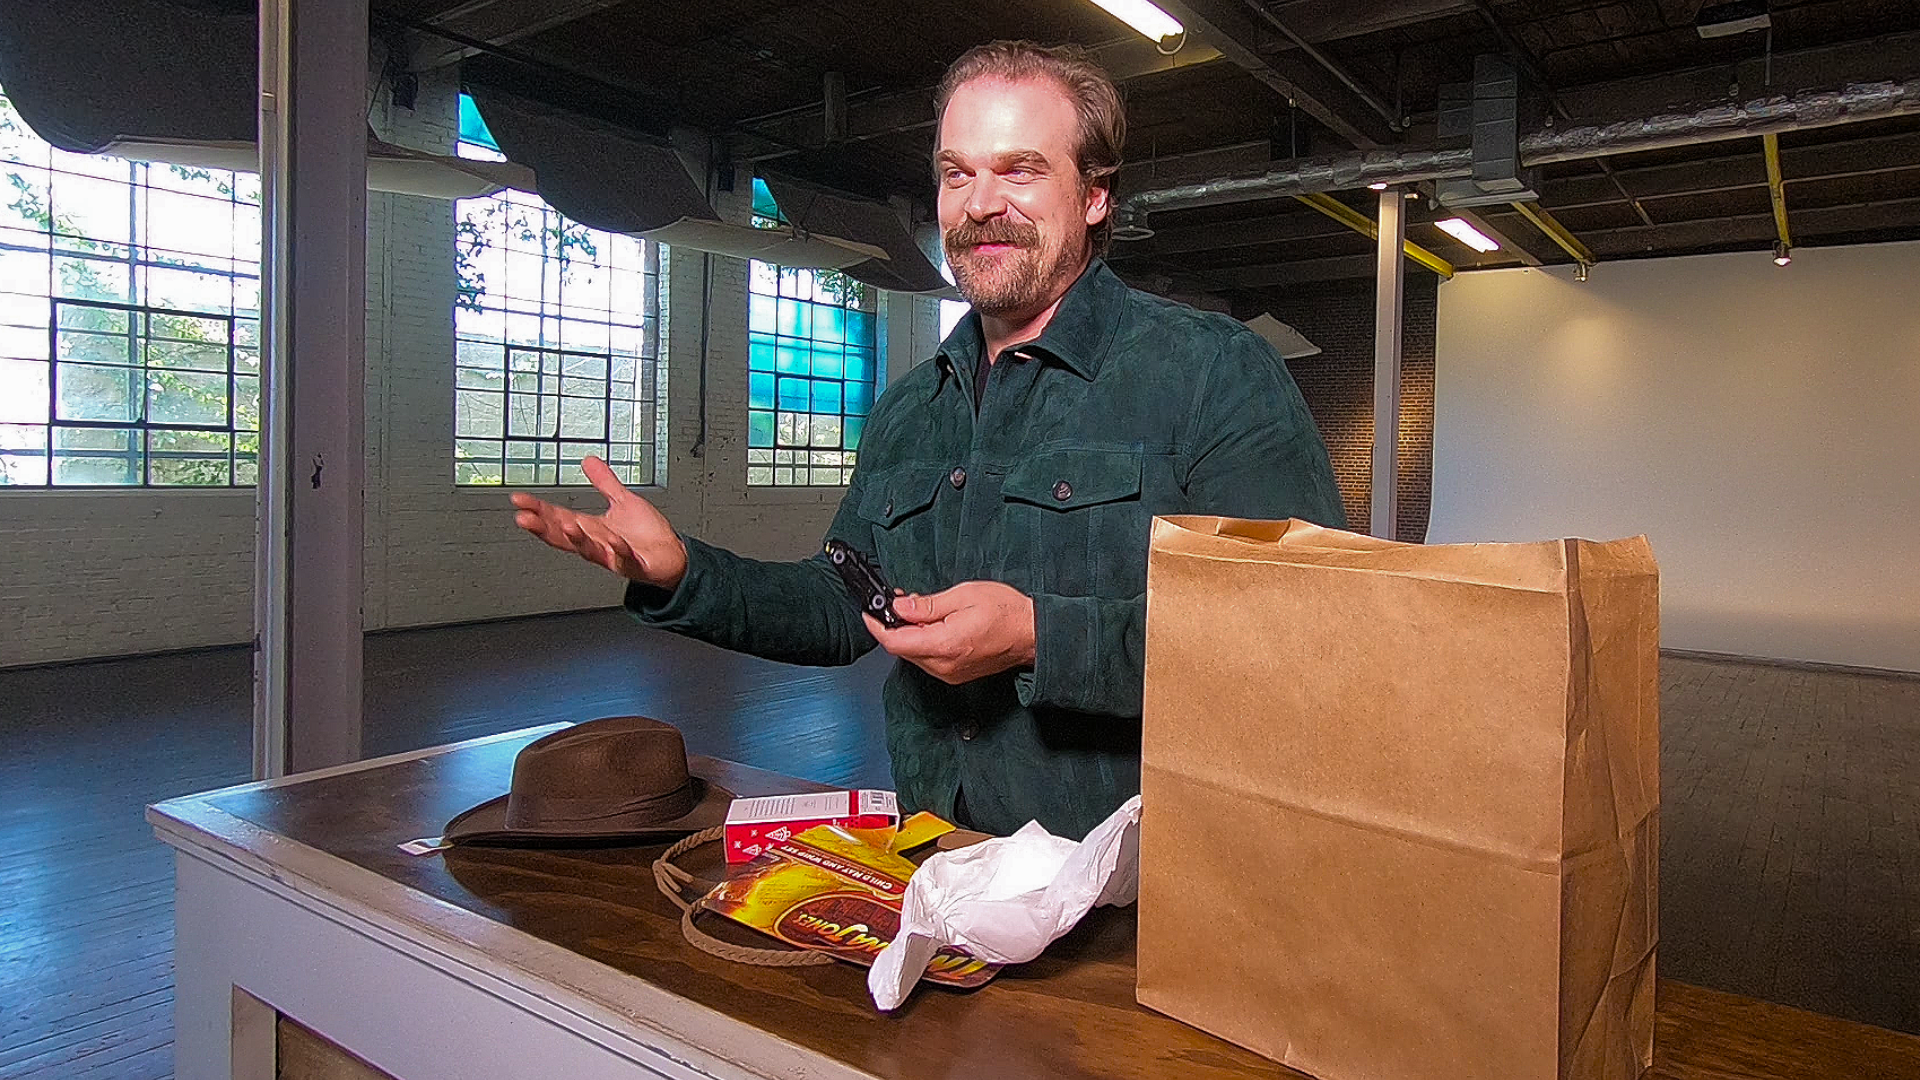 Video: Stranger Things' David Harbour unboxes some CNET surprises